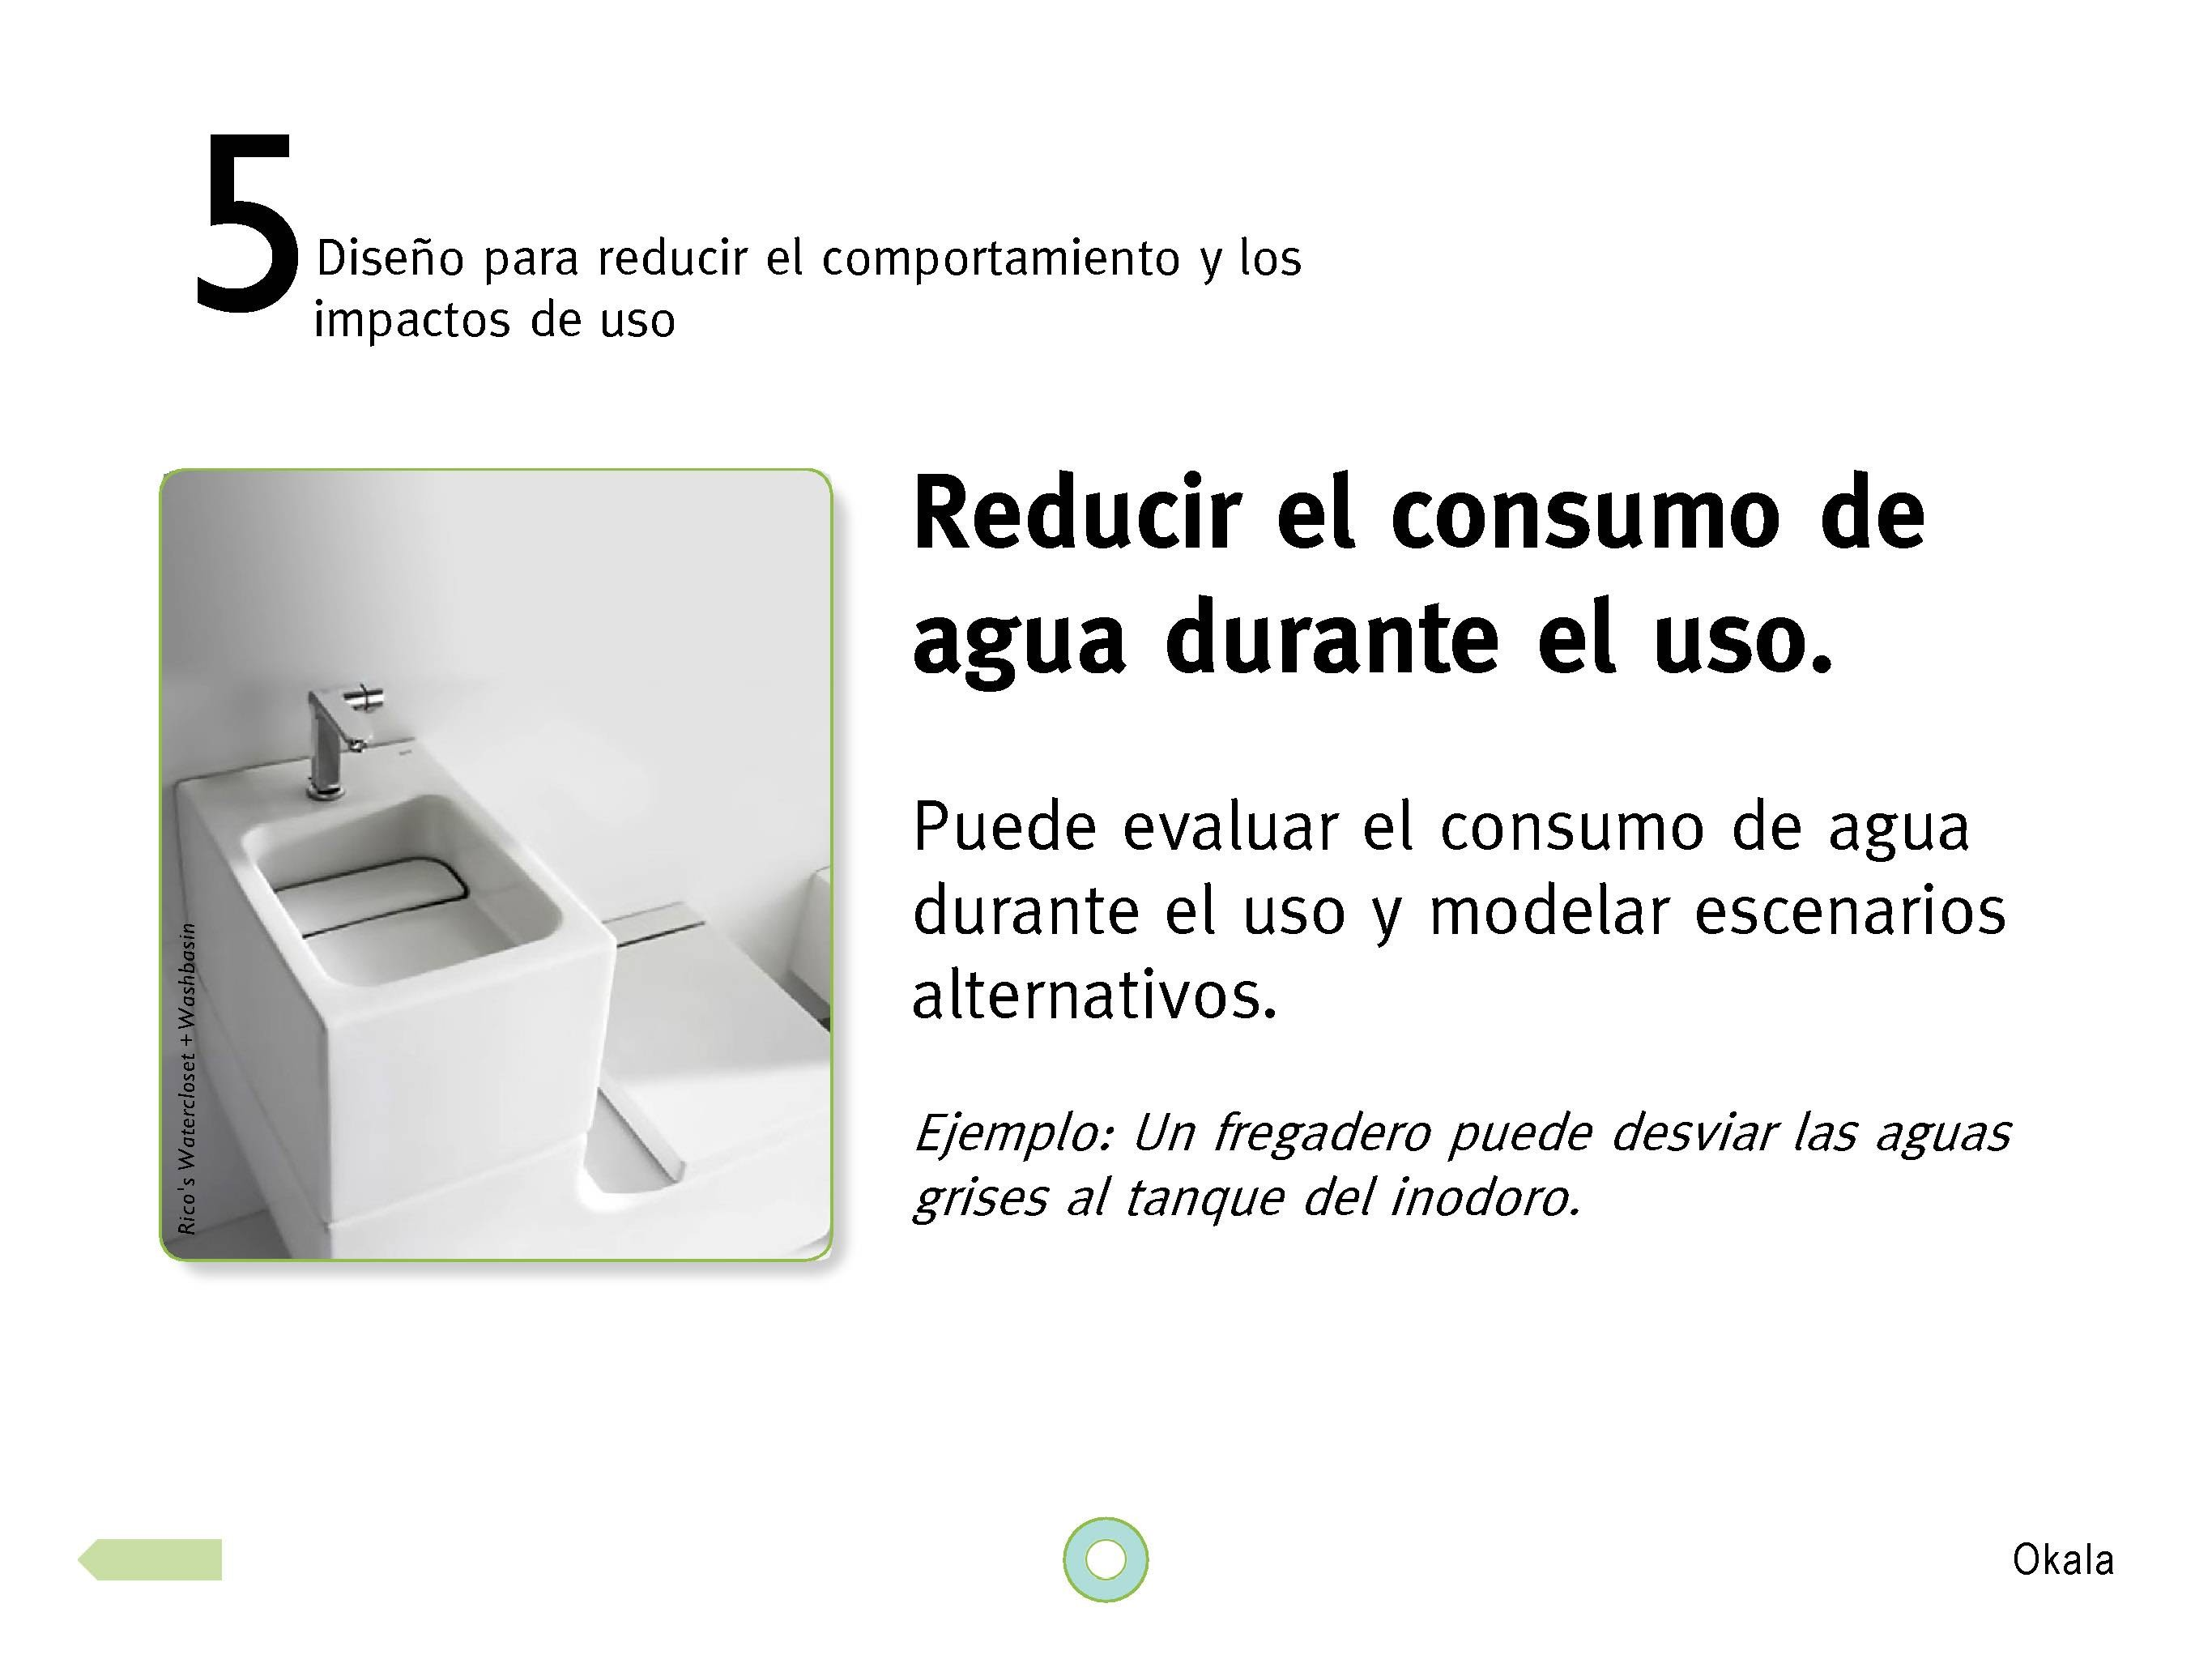 okala-ecodesign-strategy-guide-2012-spanish.new_page_30-1